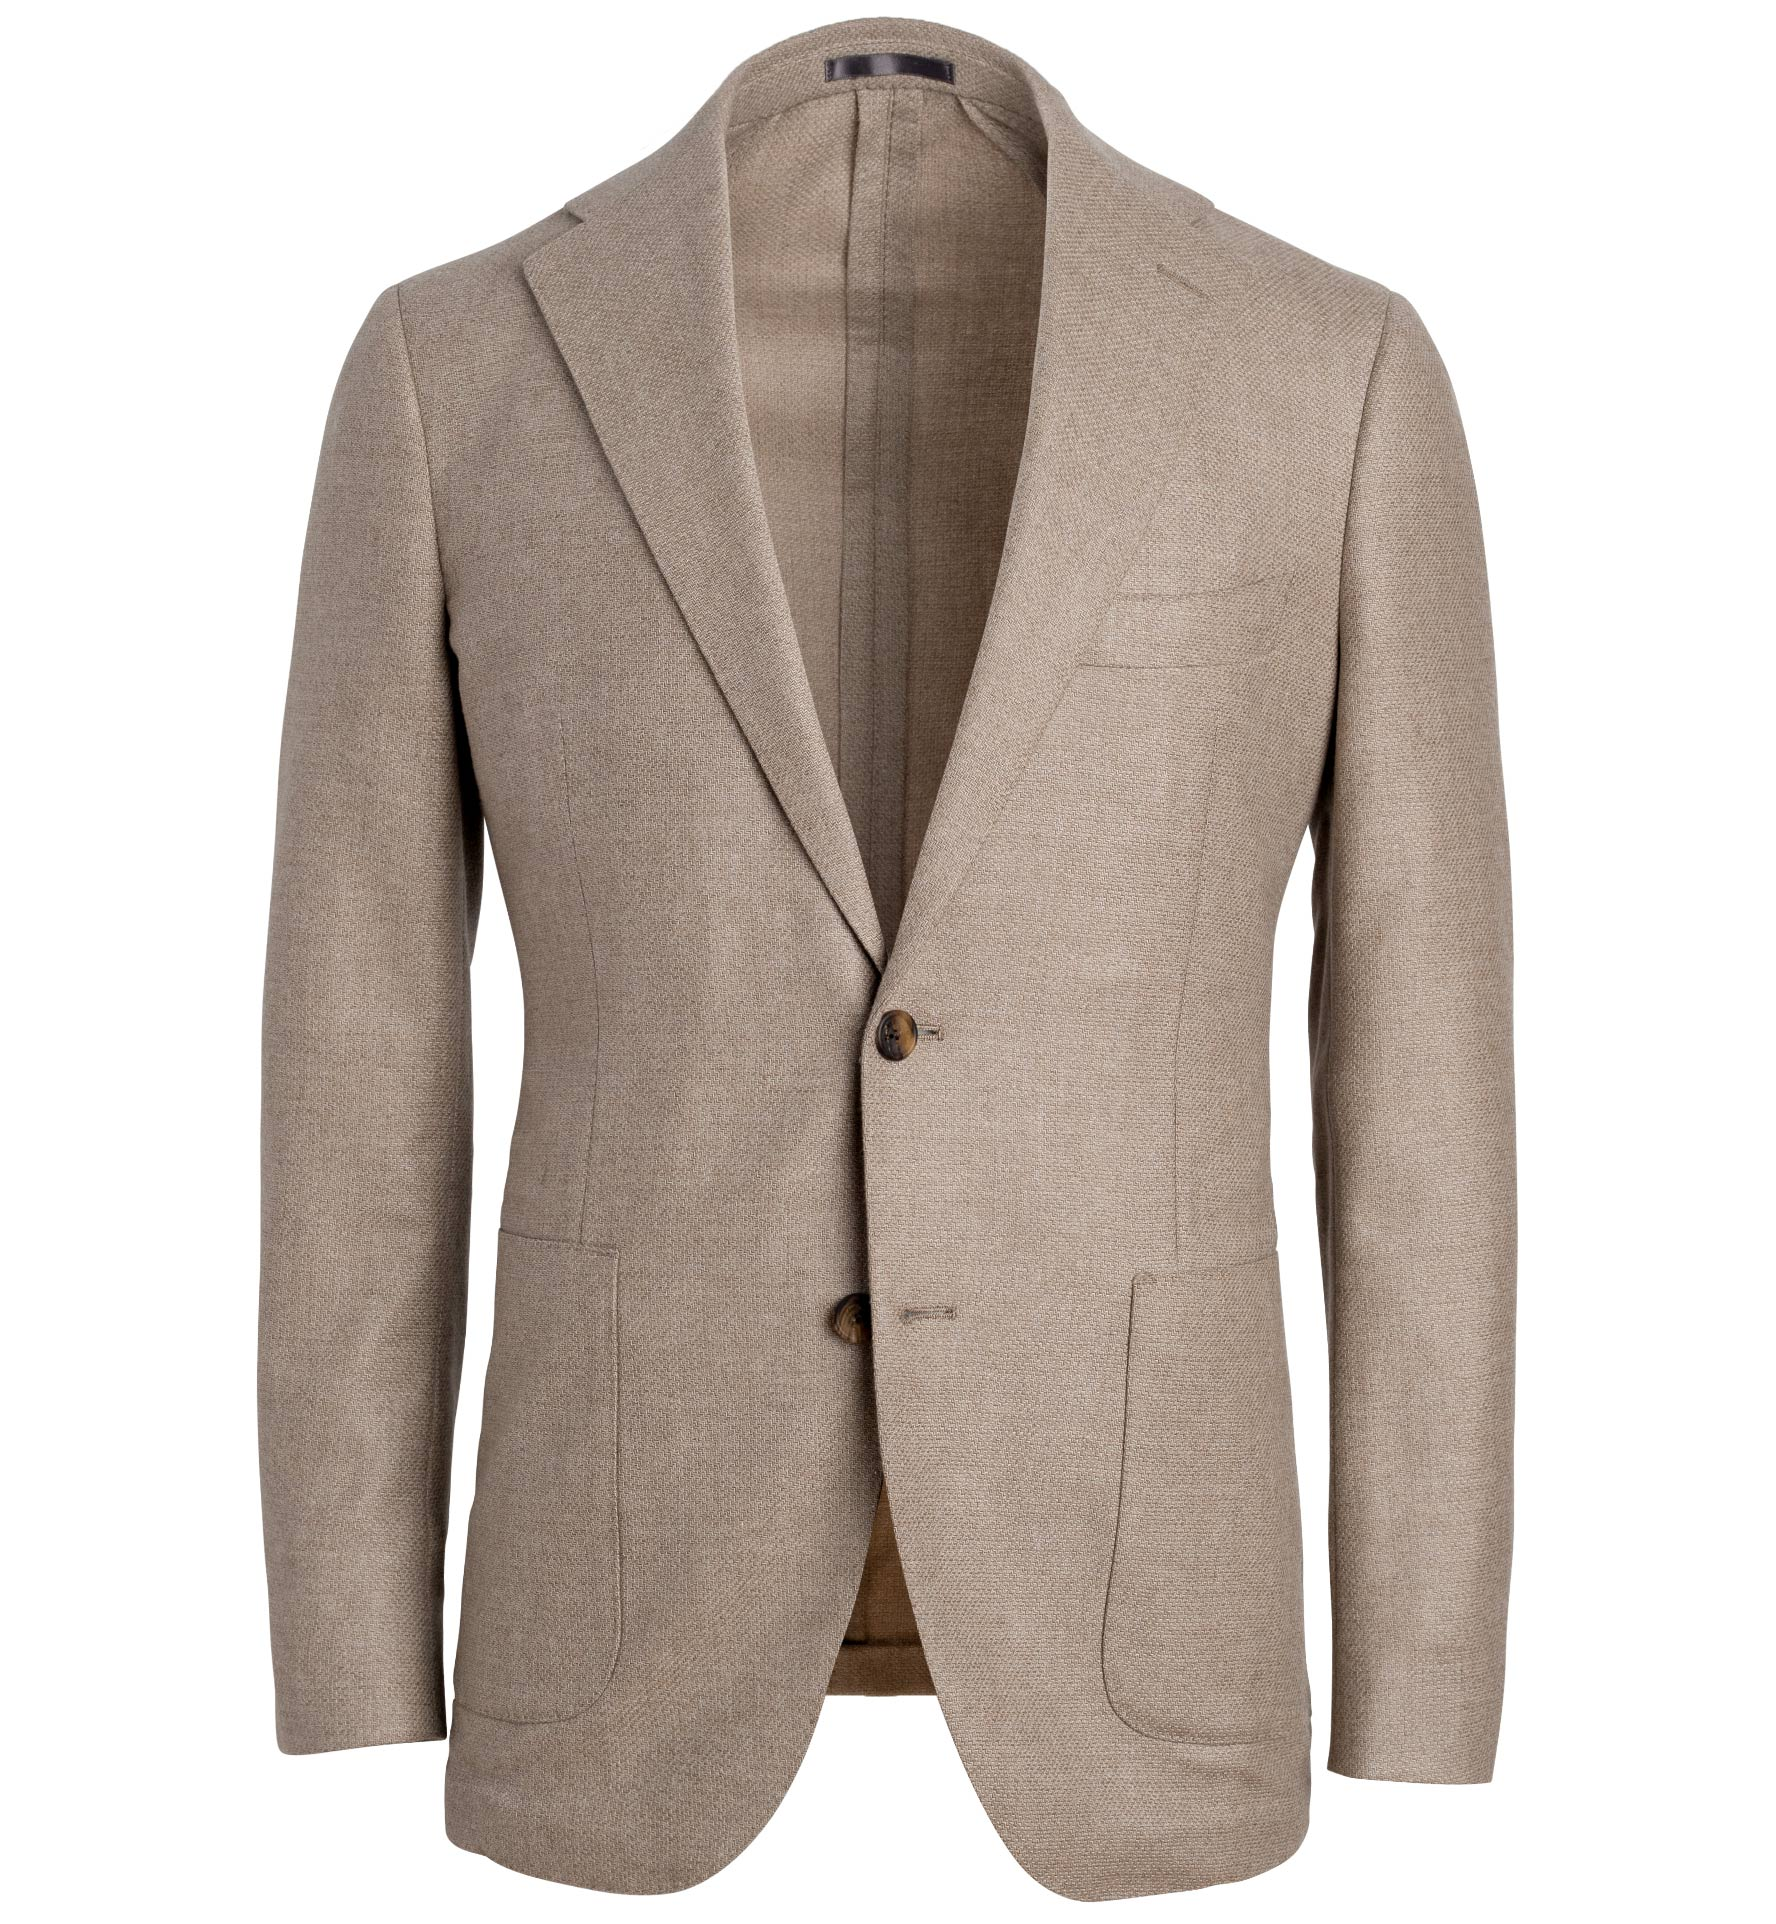 Zoom Image of Bedford Beige Textured Wool and Cashmere Jacket